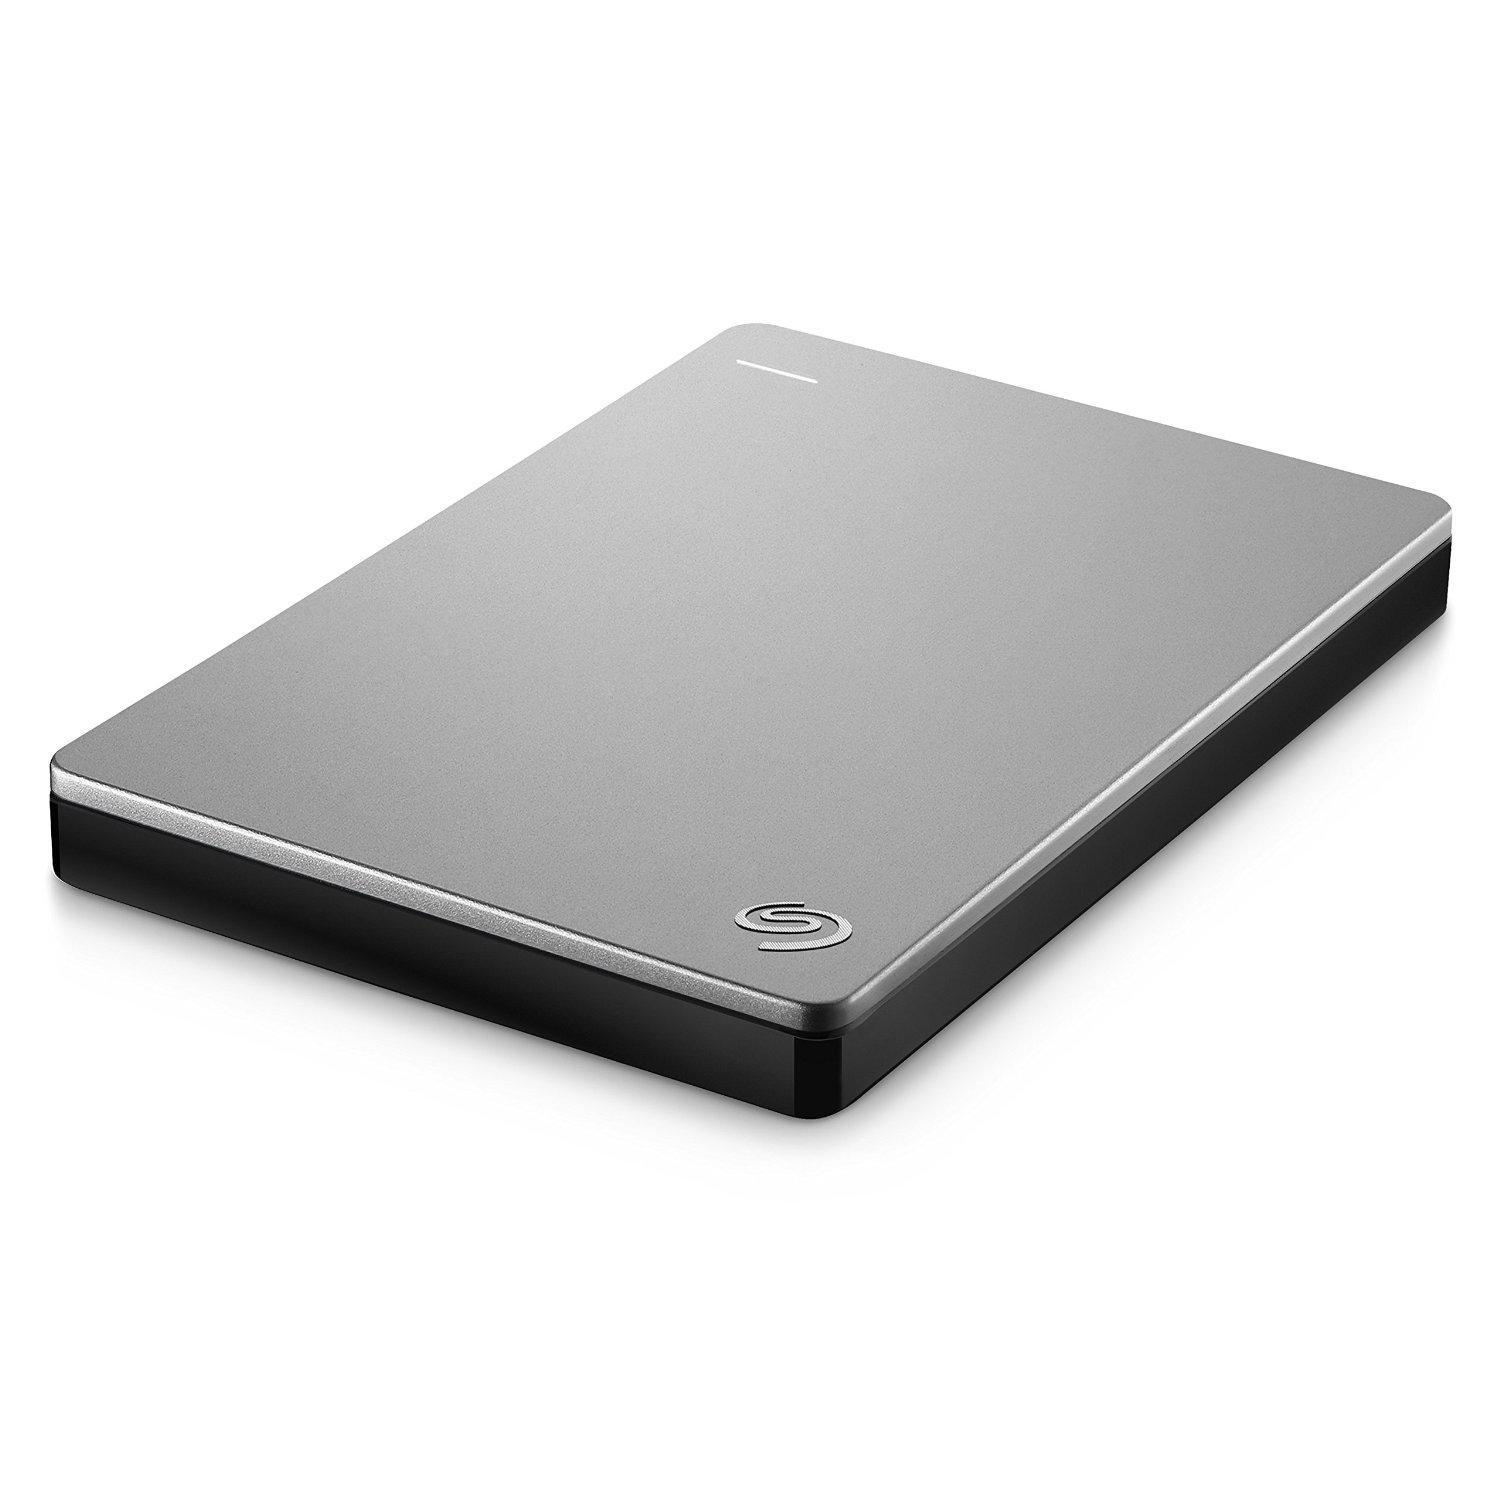 "SEAGATE Backup Plus Slim 1TB 2.5"" USB 3.0 - Gris"